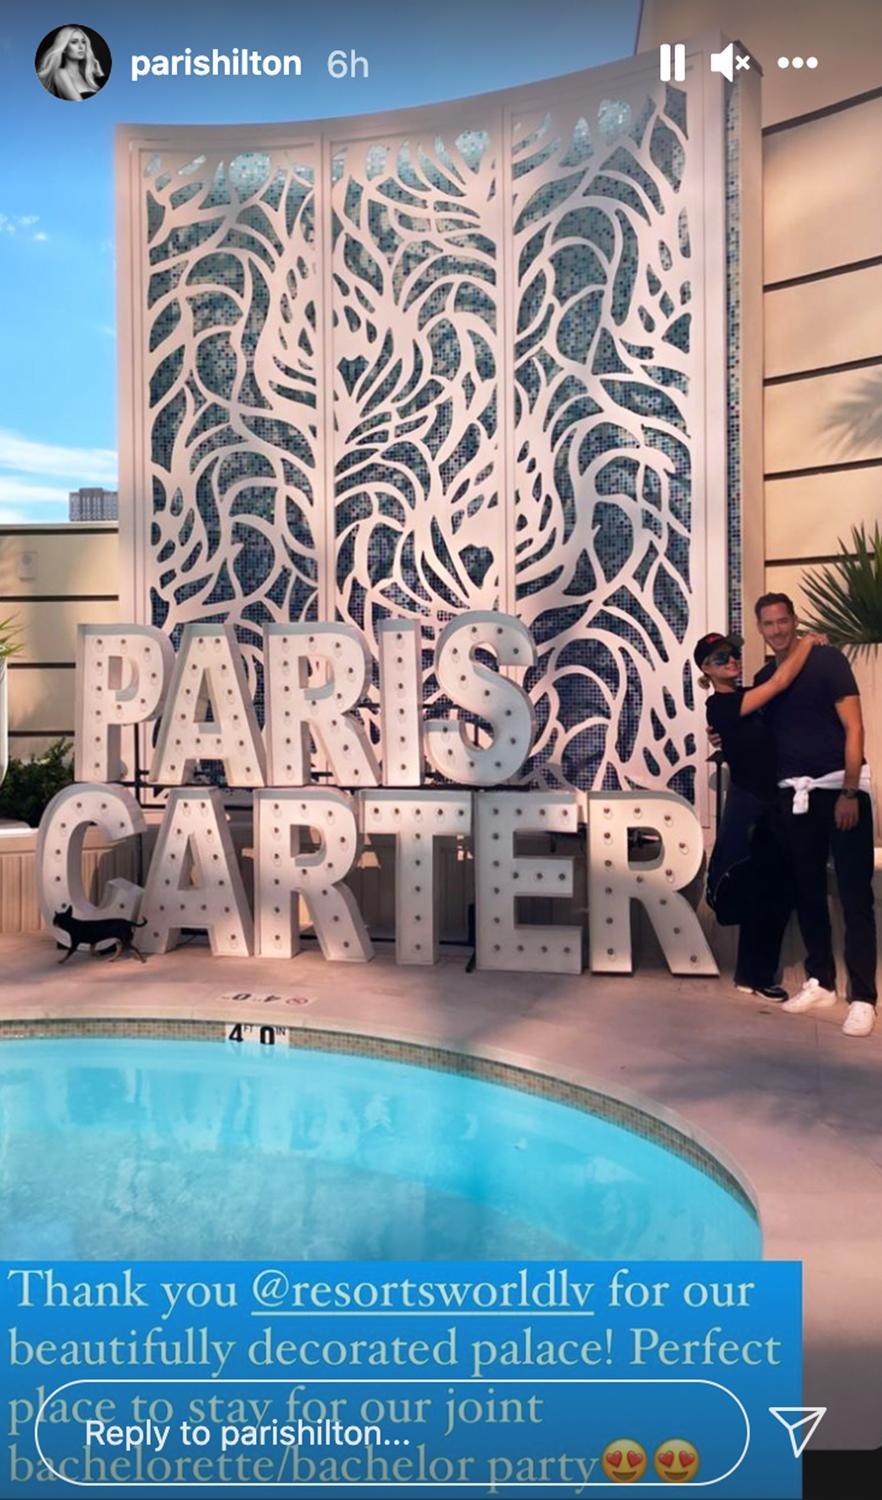 """<p>The couple spent their last days as single people partying in Las Vegas with close friends and family. <a href=""""https://people.com/tv/paris-hilton-carter-reum-las-vegas-joint-bachelor-bachelorette-party/"""" rel=""""nofollow noopener"""" target=""""_blank"""" data-ylk=""""slk:The joint festivities"""" class=""""link rapid-noclick-resp"""">The joint festivities</a> began on Oct. 8, once they landed their private plane in Sin City and were picked up by a red Rolls Royce and a fleet of town cars. They later made their way to the immersive party experience Area 15, where Hilton zip-lined; then the group danced the night away at Zouk Nightclub.</p> <p>Guests, including sister Nicky Hilton, received personalized goodies, including a custom can of rosé with Paris' photo and a tote bag embroidered with the words """"Paris & Carter That's Hot.""""</p> <p>Paris and Reum's wedding will be """"a three-day affair,"""" <a href=""""https://people.com/tv/paris-hilton-wedding-affair-not-a-bridezilla-fallon/"""" rel=""""nofollow noopener"""" target=""""_blank"""" data-ylk=""""slk:the Simple Life star revealed"""" class=""""link rapid-noclick-resp"""">the <em>Simple Life</em> star revealed</a> on <em>The Tonight Show</em>, with <a href=""""https://people.com/tv/paris-hilton-wedding-affair-not-a-bridezilla-fallon/"""" rel=""""nofollow noopener"""" target=""""_blank"""" data-ylk=""""slk:&quot;probably 10&quot; outfit changes"""" class=""""link rapid-noclick-resp"""">""""probably 10"""" outfit changes</a>. It'll also be filmed for a Peacock docuseries called <a href=""""https://people.com/tv/engaged-paris-hilton-wants-fans-to-see-that-she-finally-got-her-fairytale-ending-in-new-reality-show/"""" rel=""""nofollow noopener"""" target=""""_blank"""" data-ylk=""""slk:Paris in Love"""" class=""""link rapid-noclick-resp""""><em>Paris in Love</em></a>.</p>"""